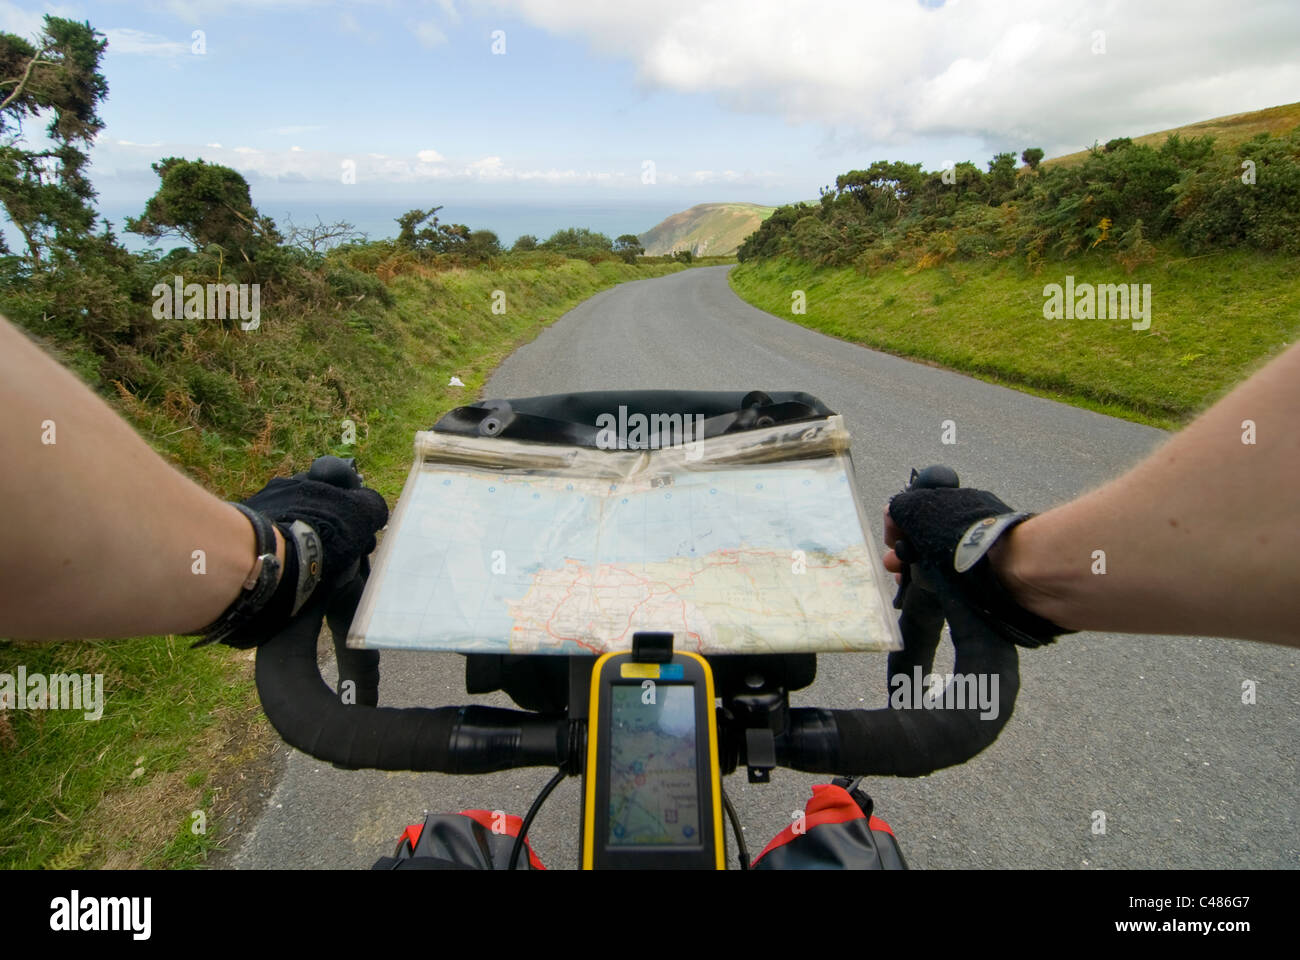 A GPS and map on a bicycle tour along the coast of Exmoor near hunters inn, Devon - Stock Image